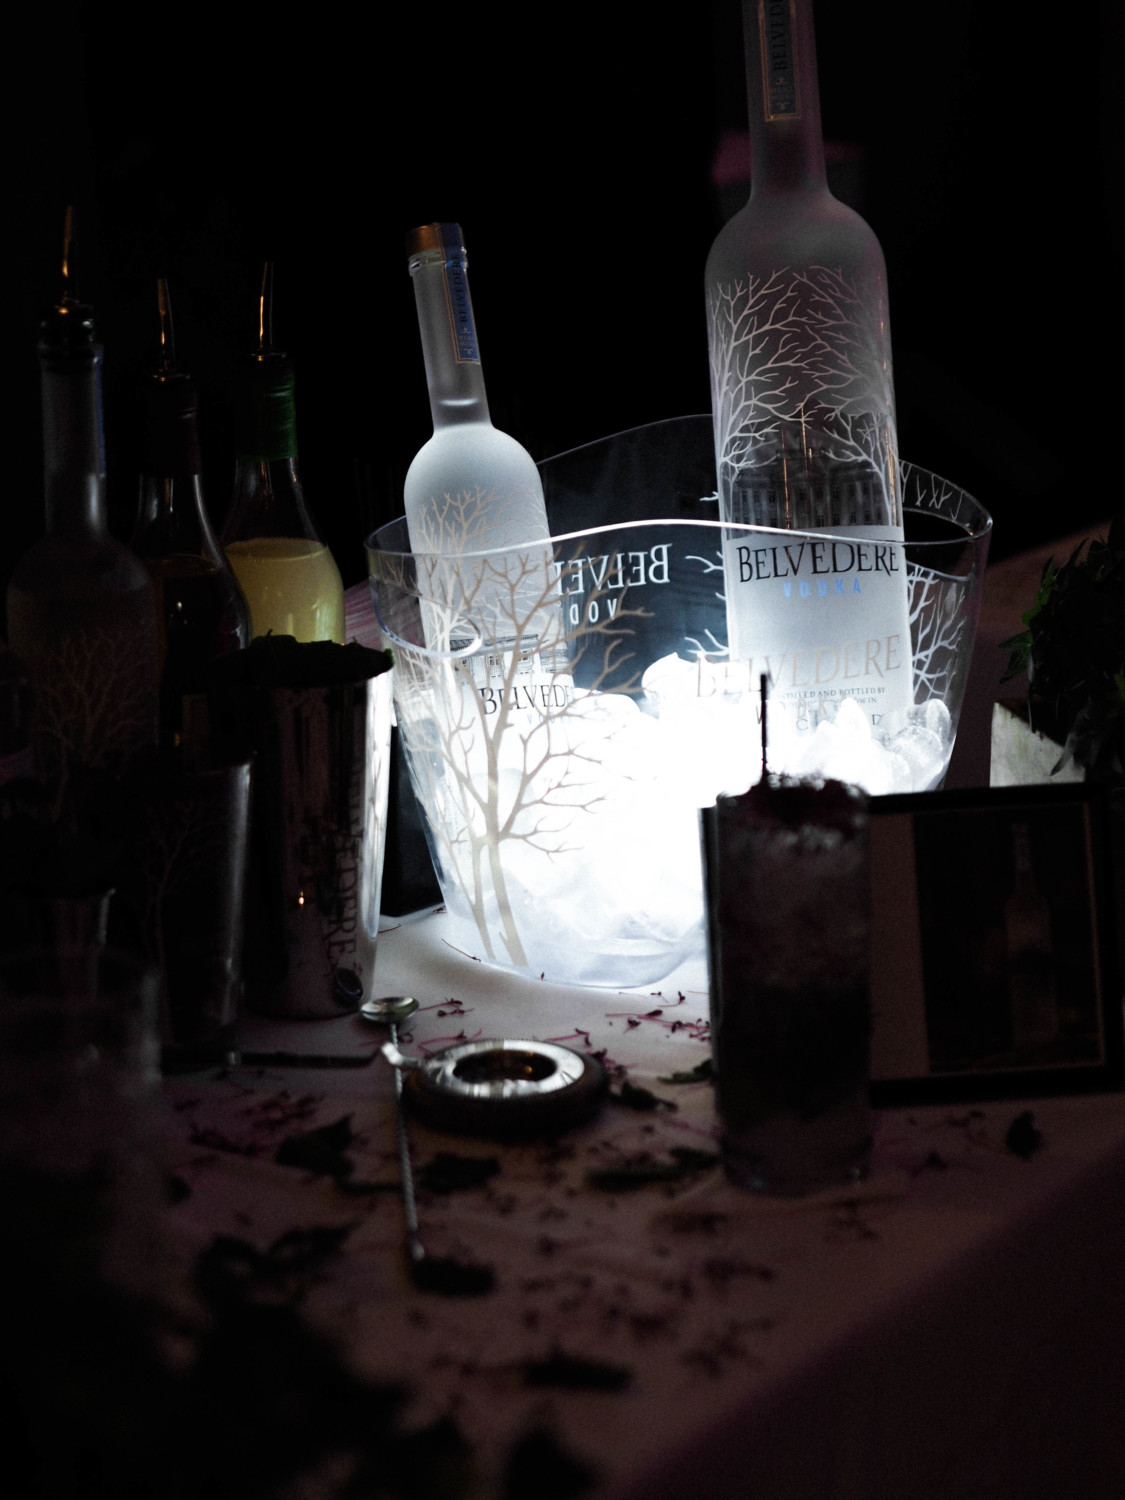 The Cocktail Experience, Leeds | robowecop